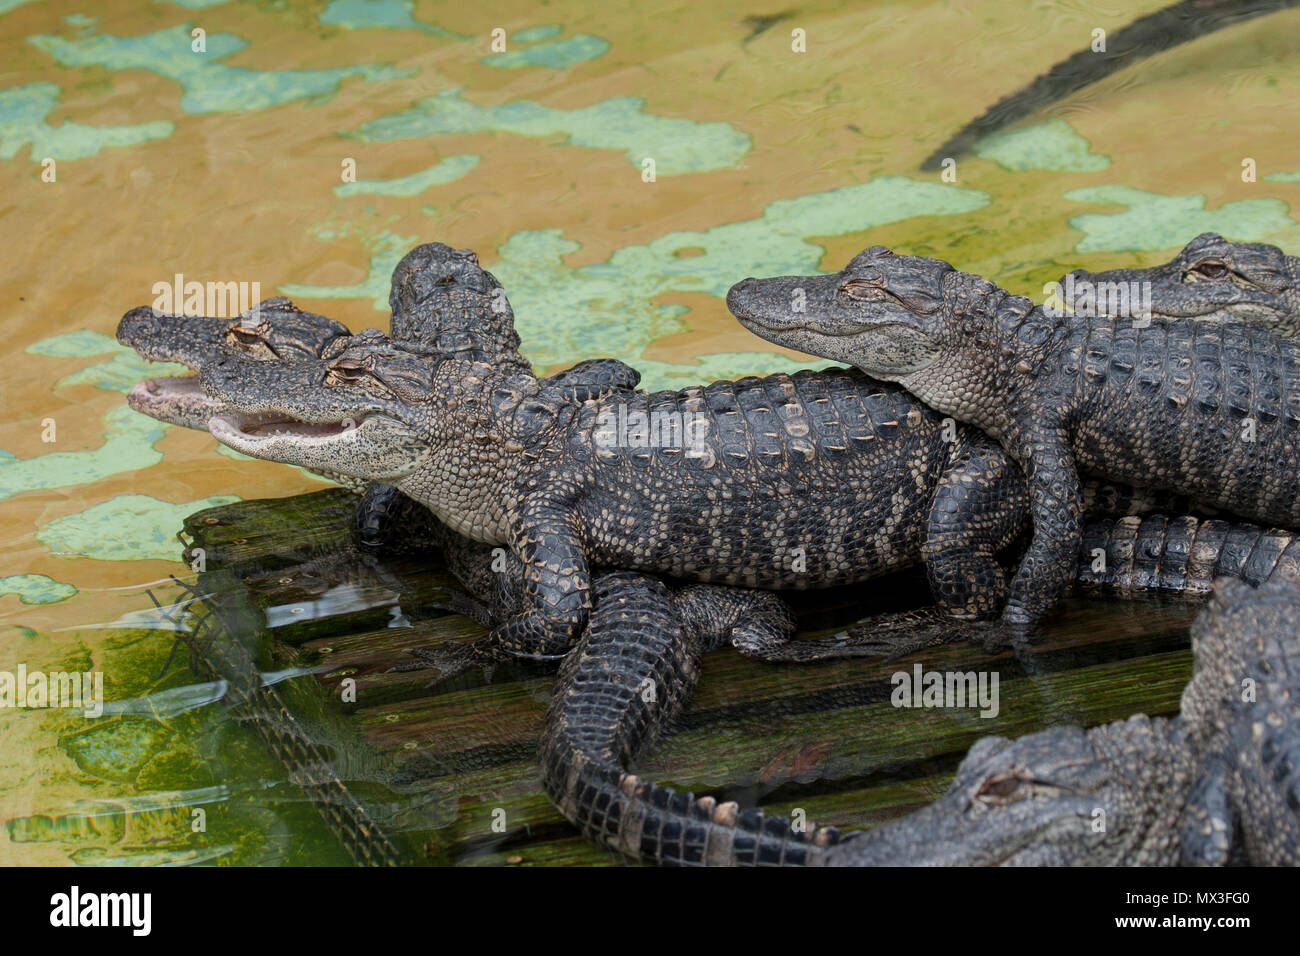 Alligator youngsters on log Stock Photo